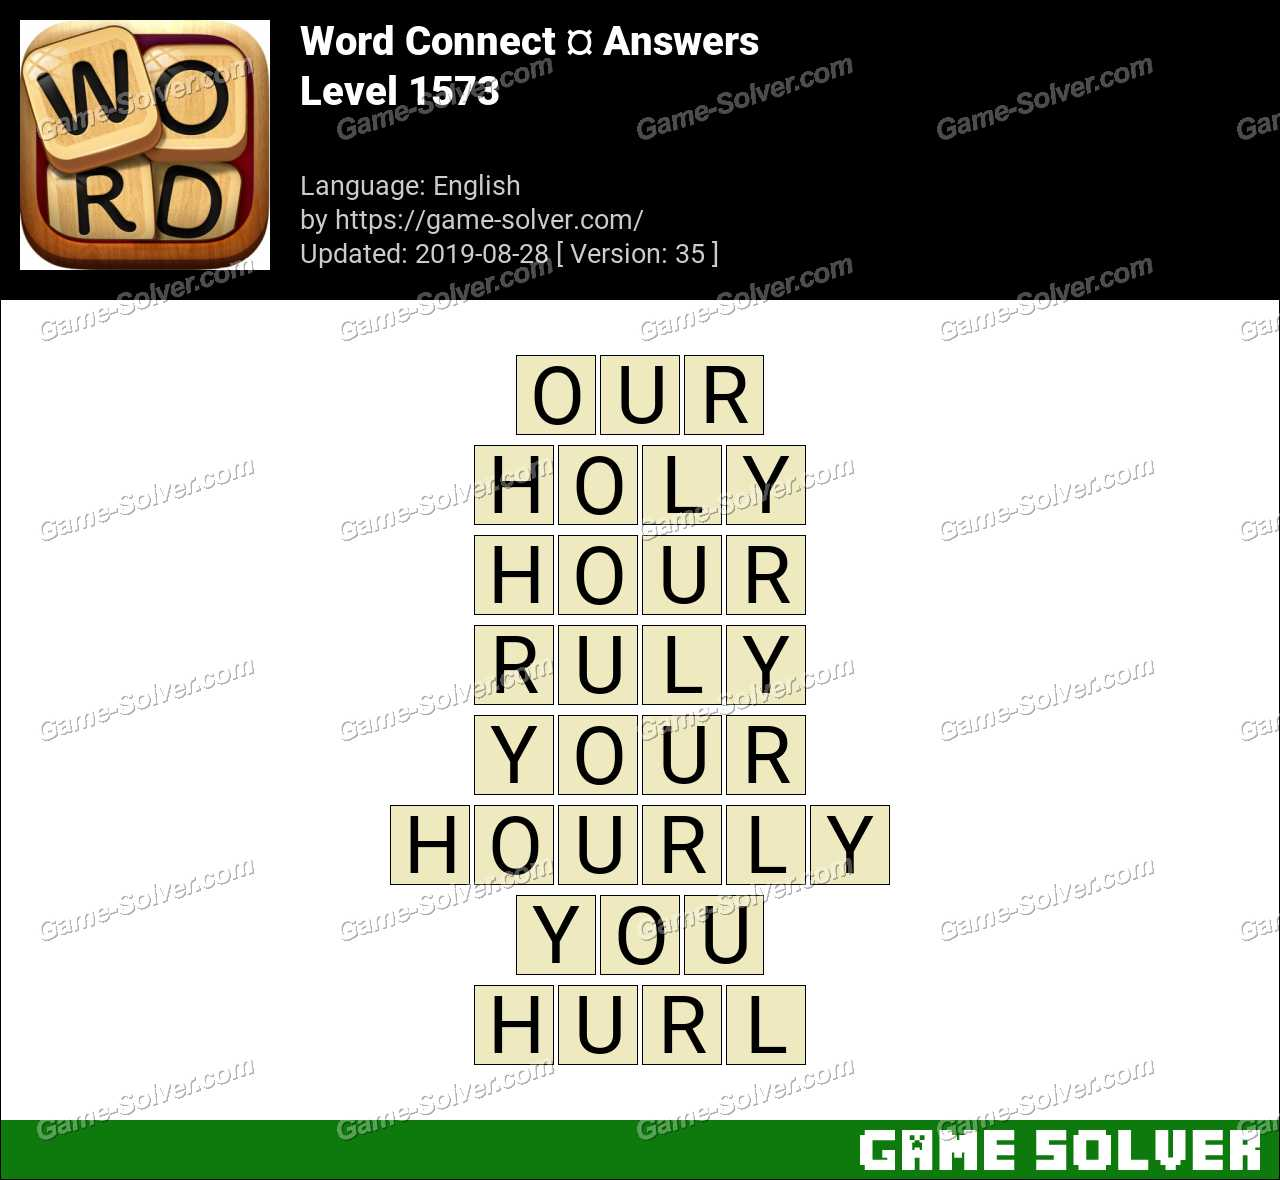 Word Connect Level 1573 Answers